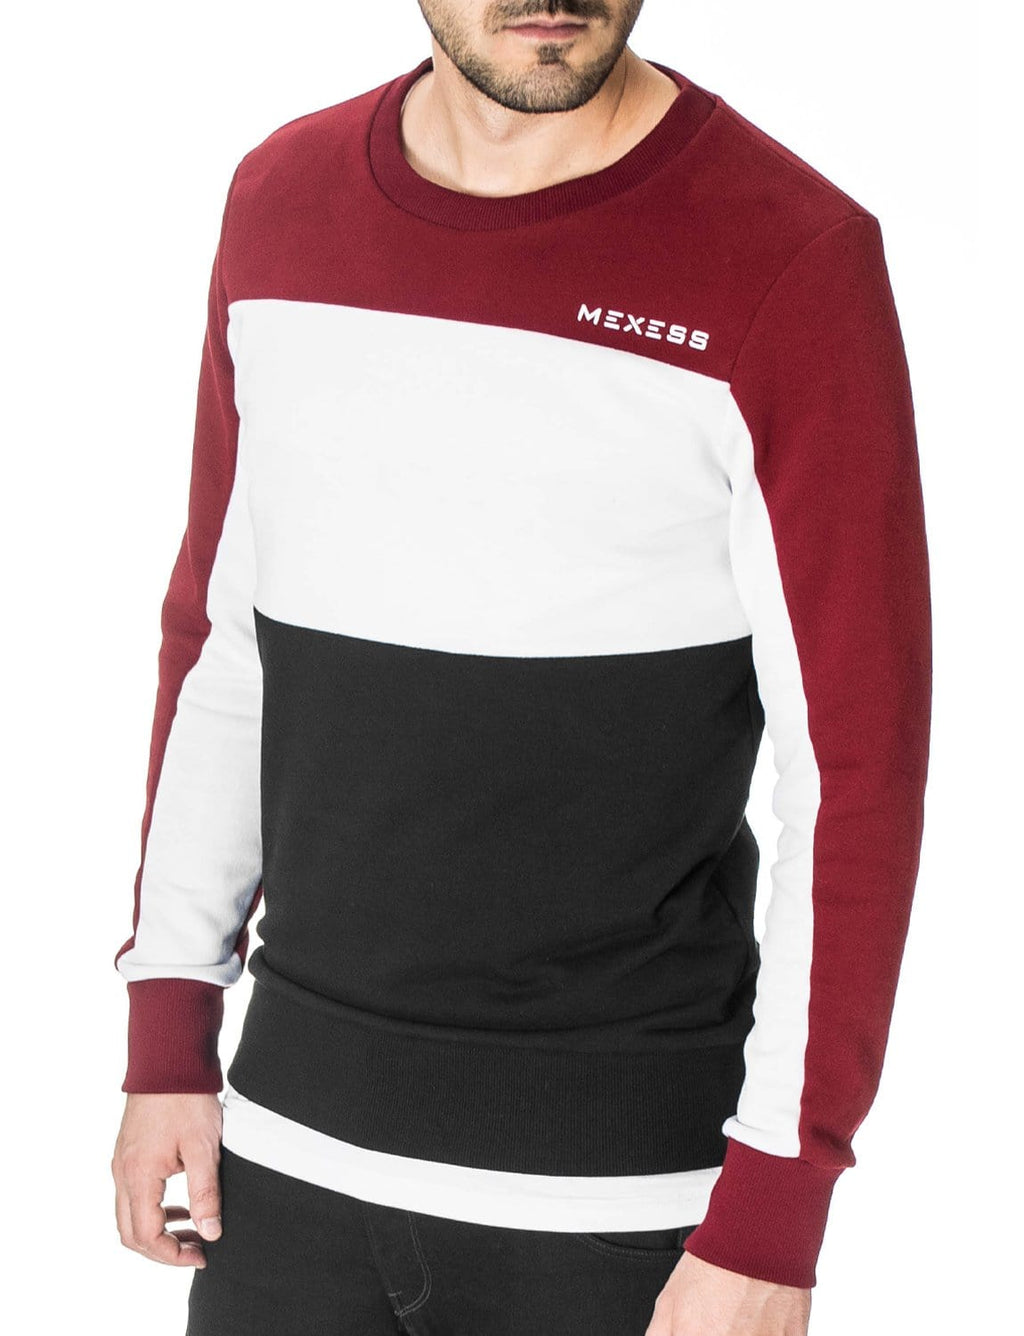 multicolor sweatshirt for men